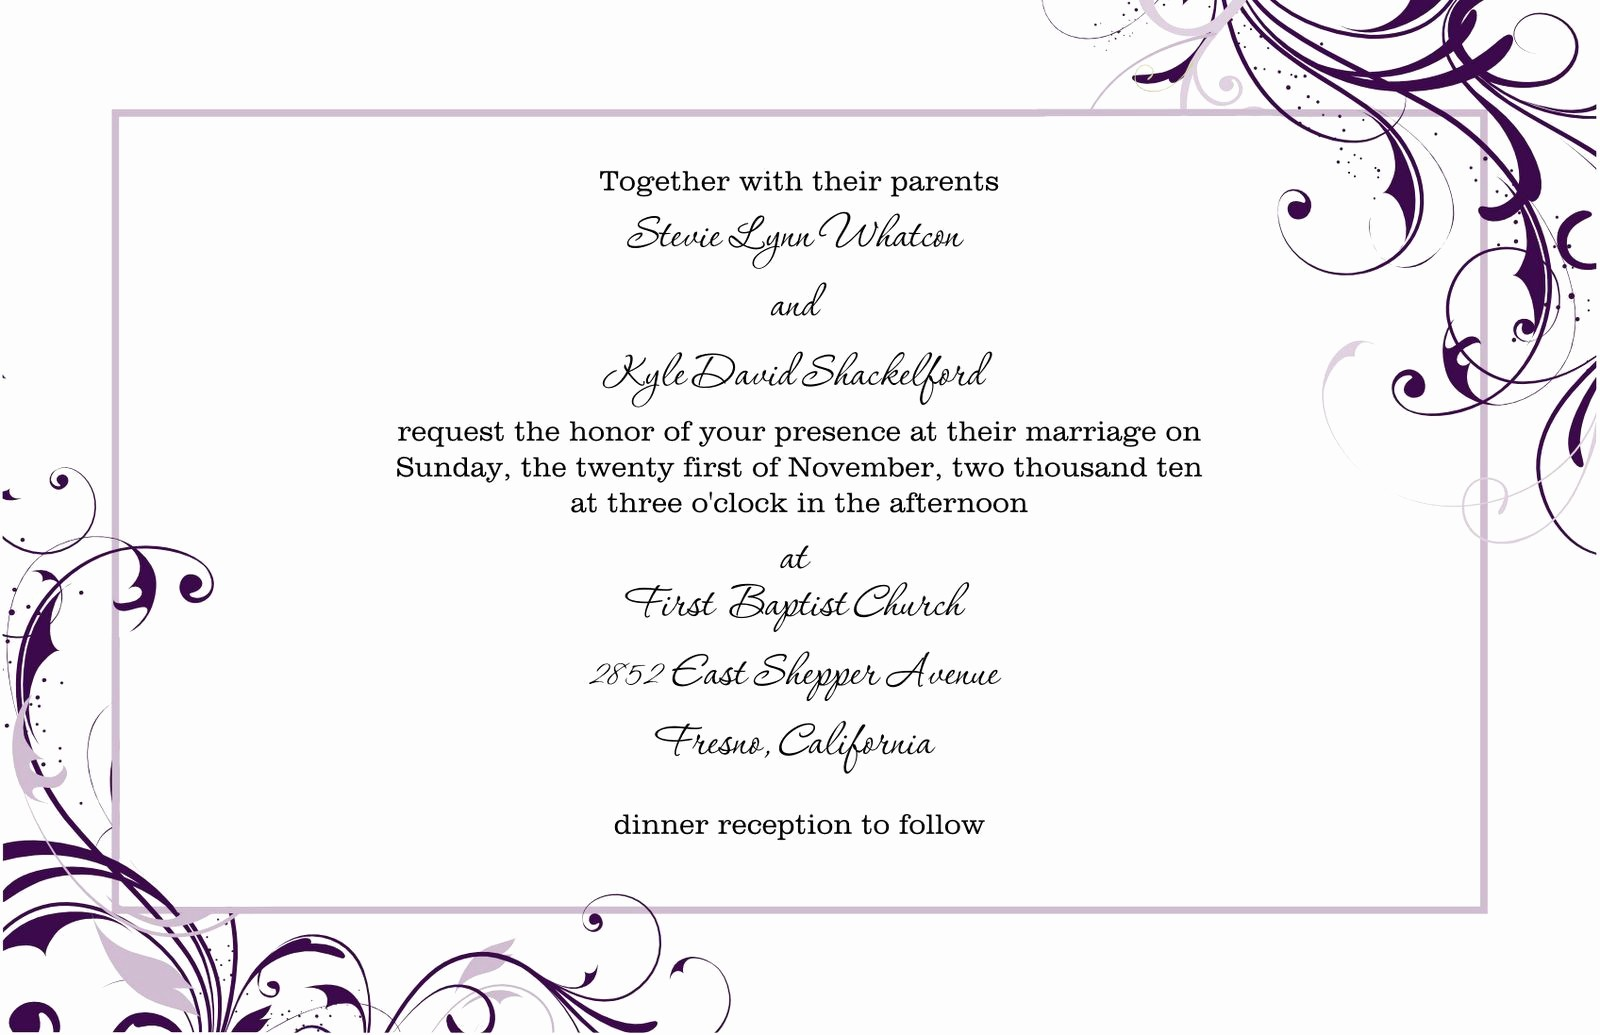 Wedding Invitations Templates Microsoft Word Elegant Free Blank Wedding Invitation Templates for Microsoft Word